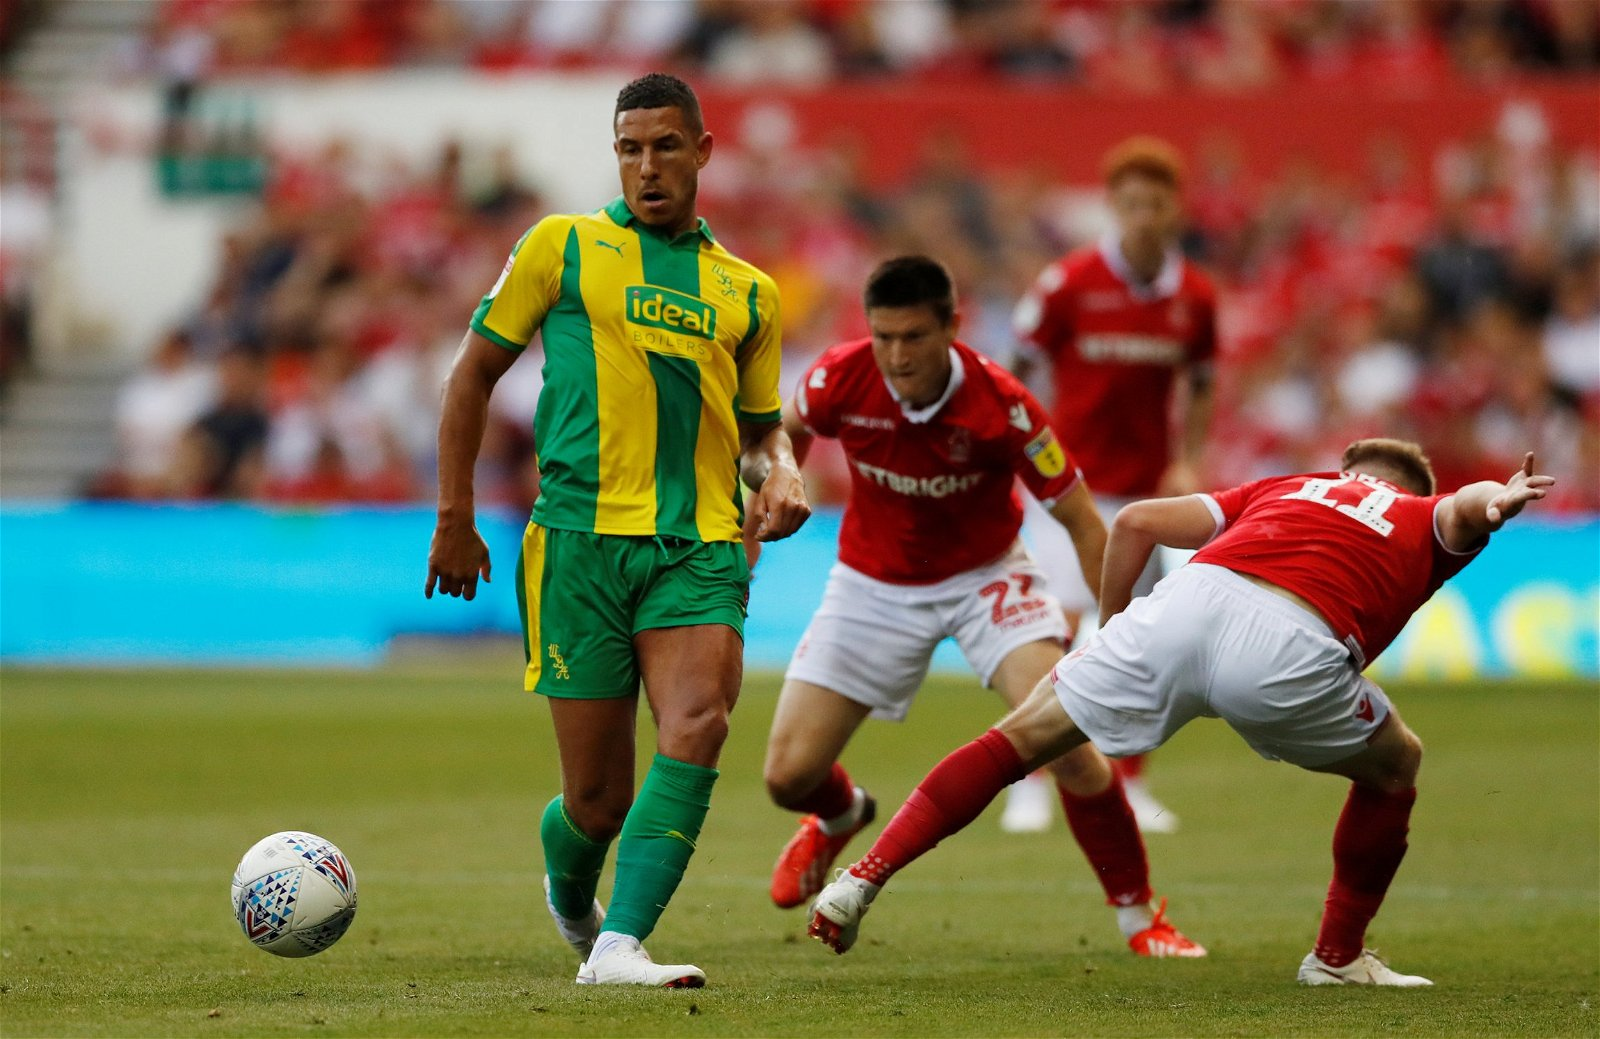 Jake Livermore playing for West Brom vs Nottingham Forest